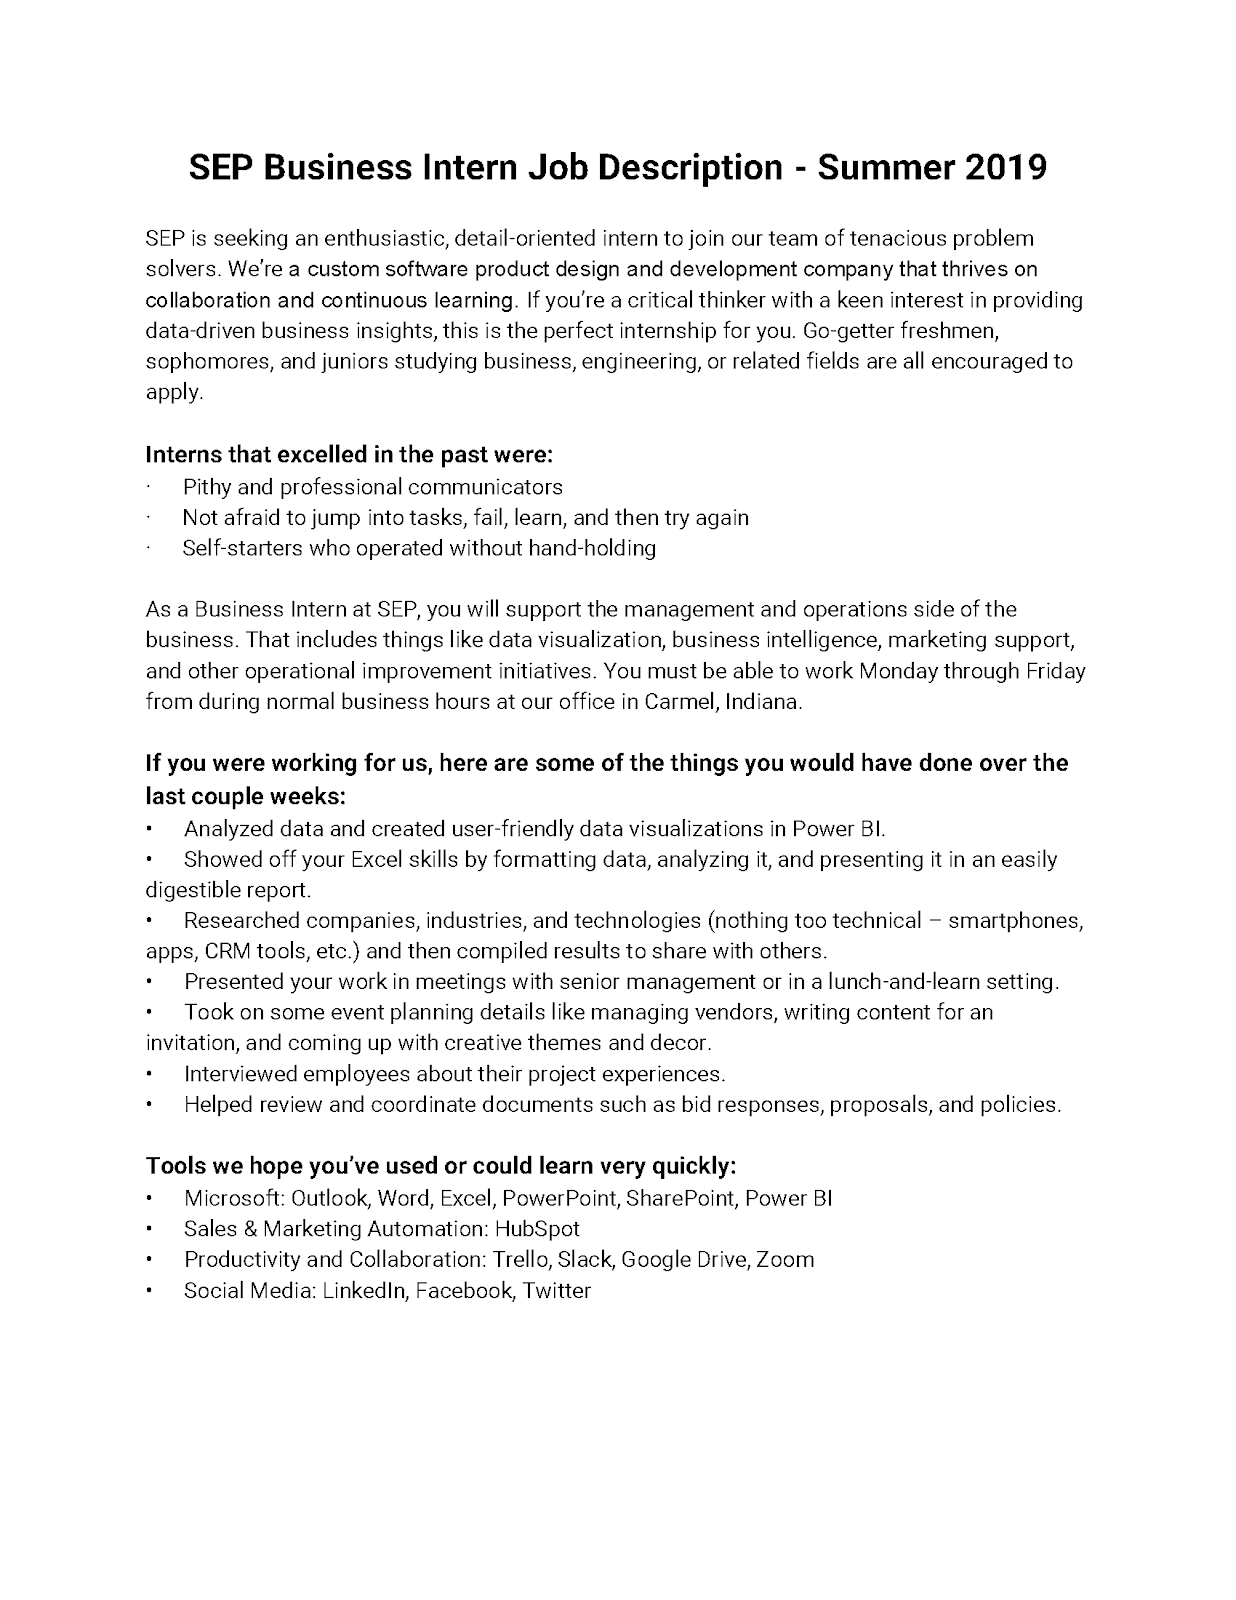 Purdue Ie Undergrad News And Notes Business Internship Opportunity At Software Engineering Professionals Sep